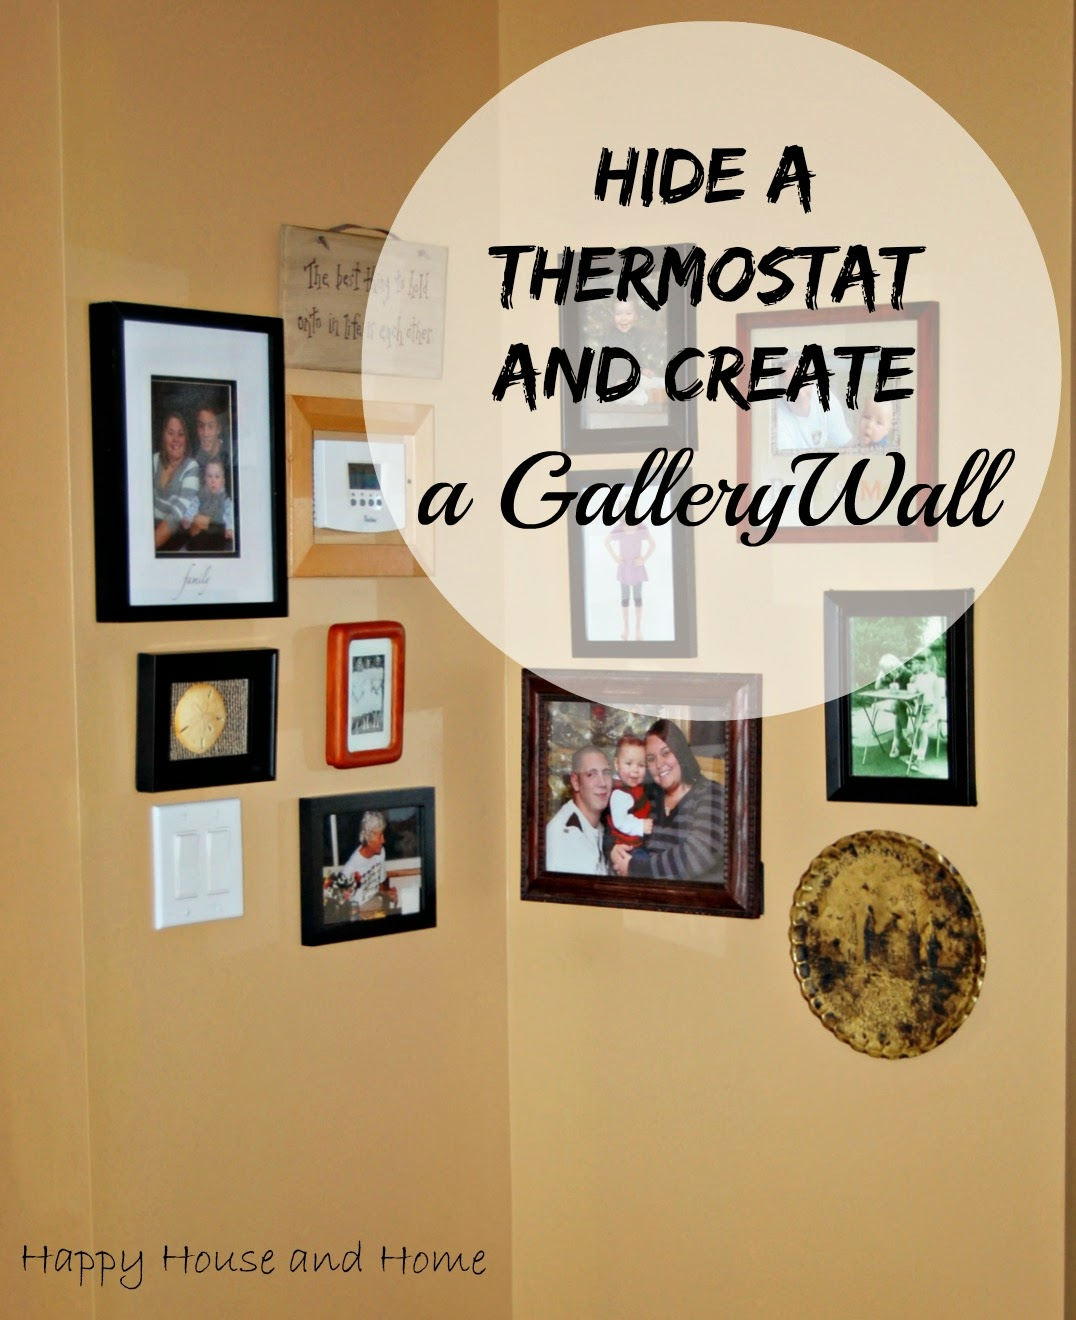 Hide a Thermostat, Gallery Wall